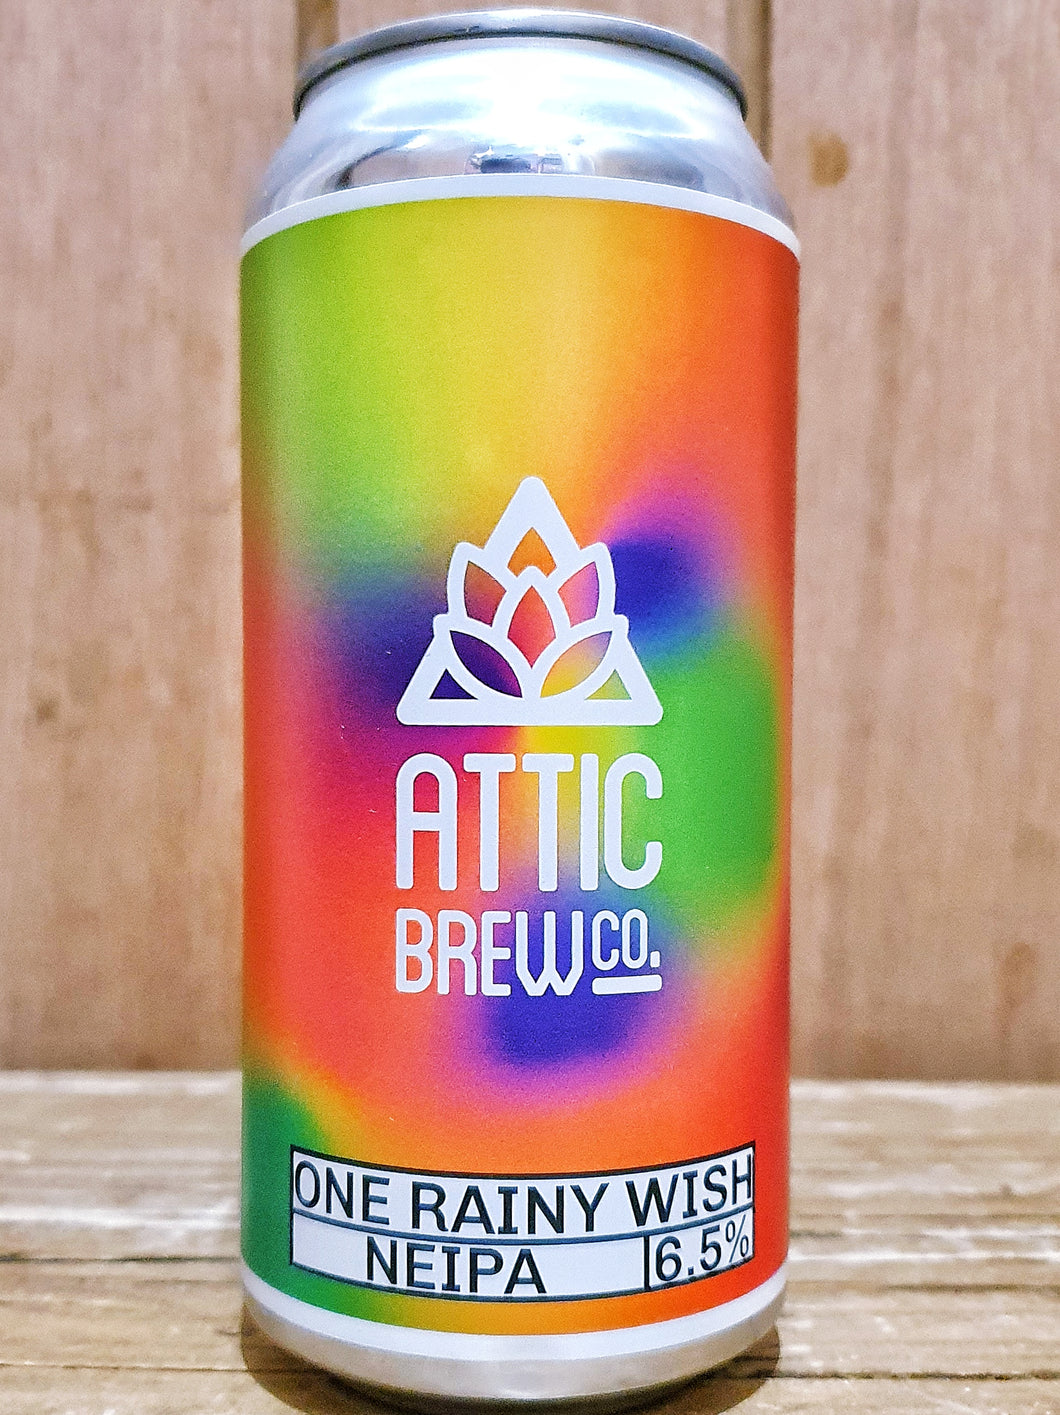 Attic Brew Co - One Rainy Wish